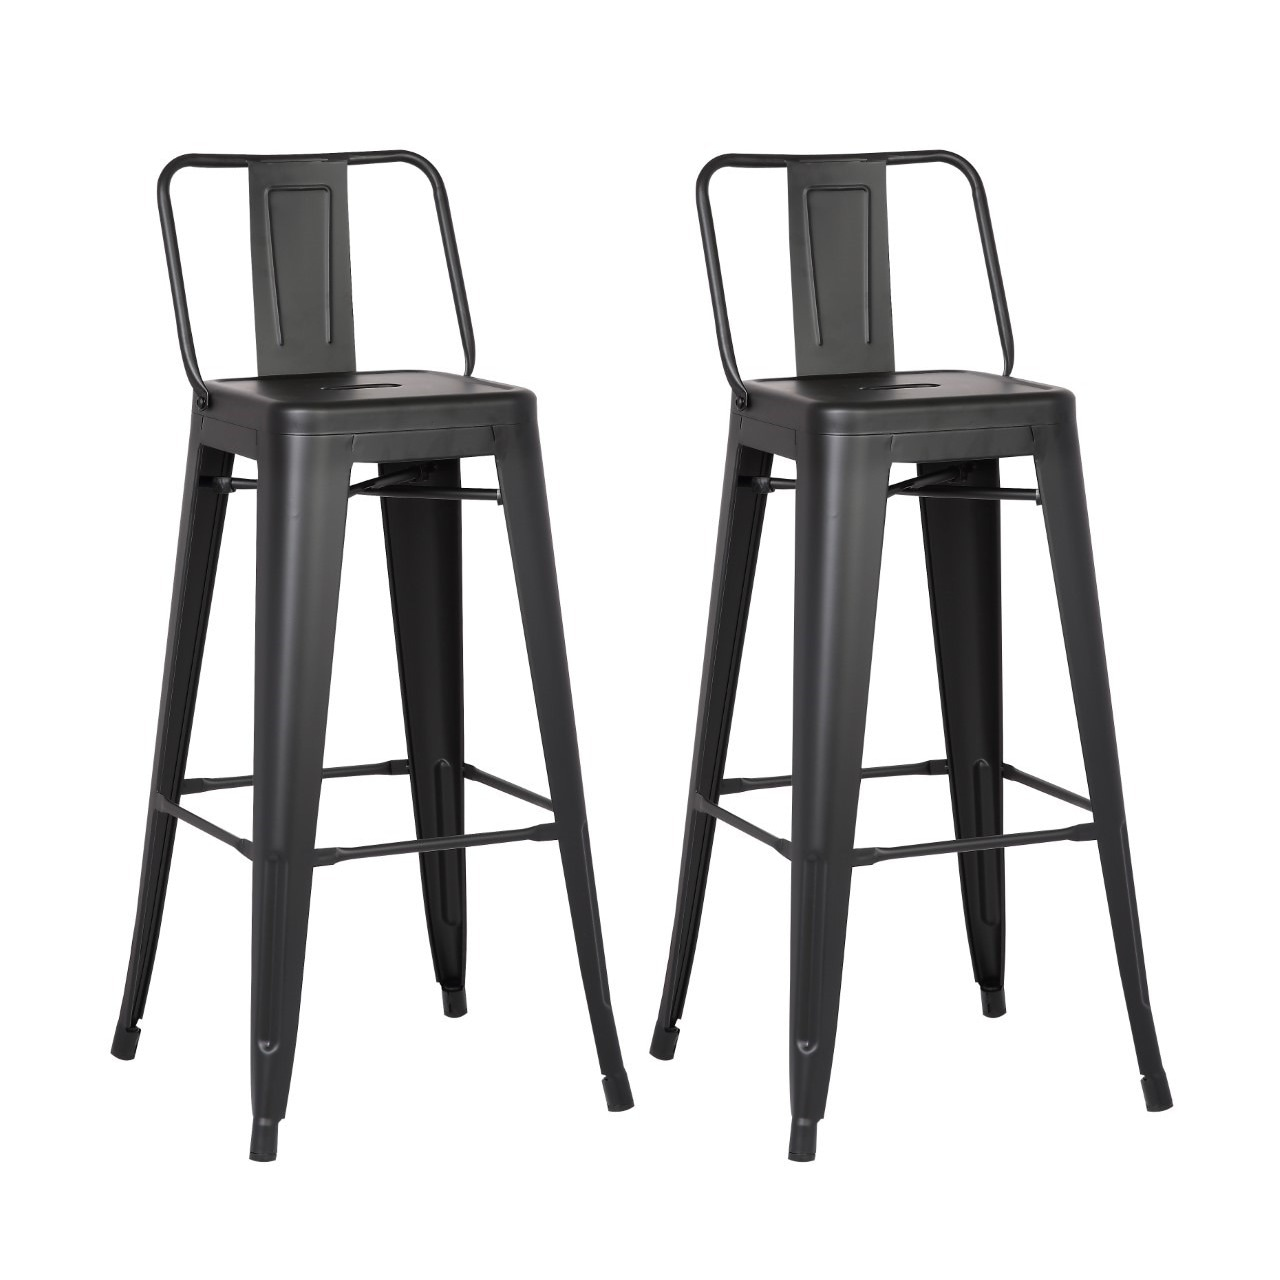 Shop steel 24 inch bar stool set of 2 on sale free shipping today overstock com 11718074